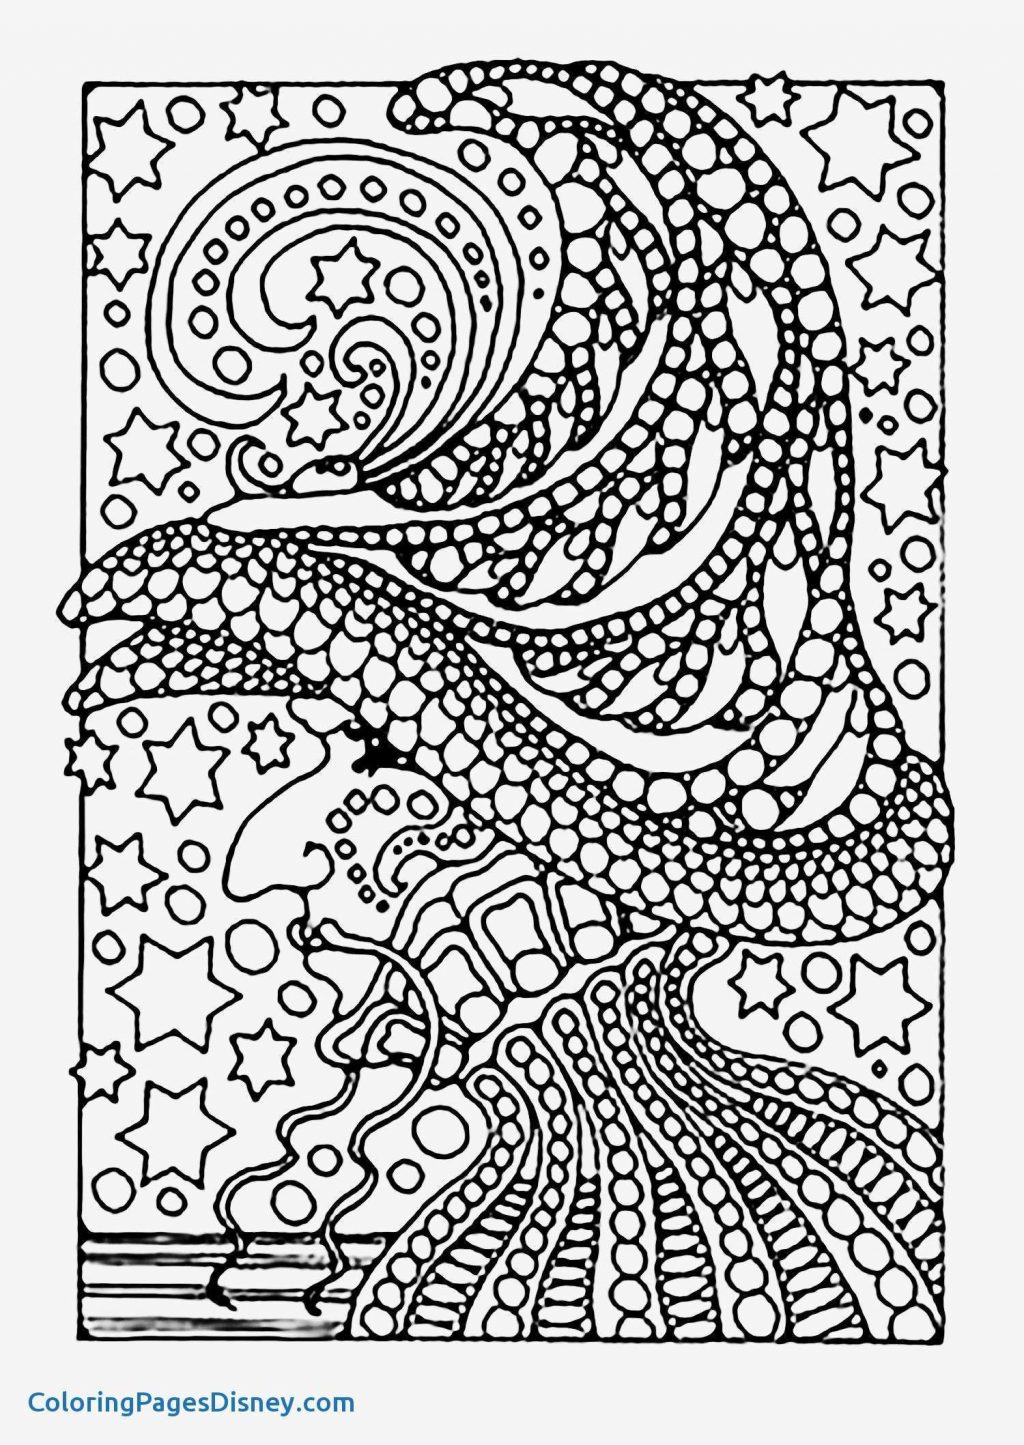 Jesus Christmas Coloring Pages Coloring Book Astonishing Disney Christmas Coloring Pages Pdf